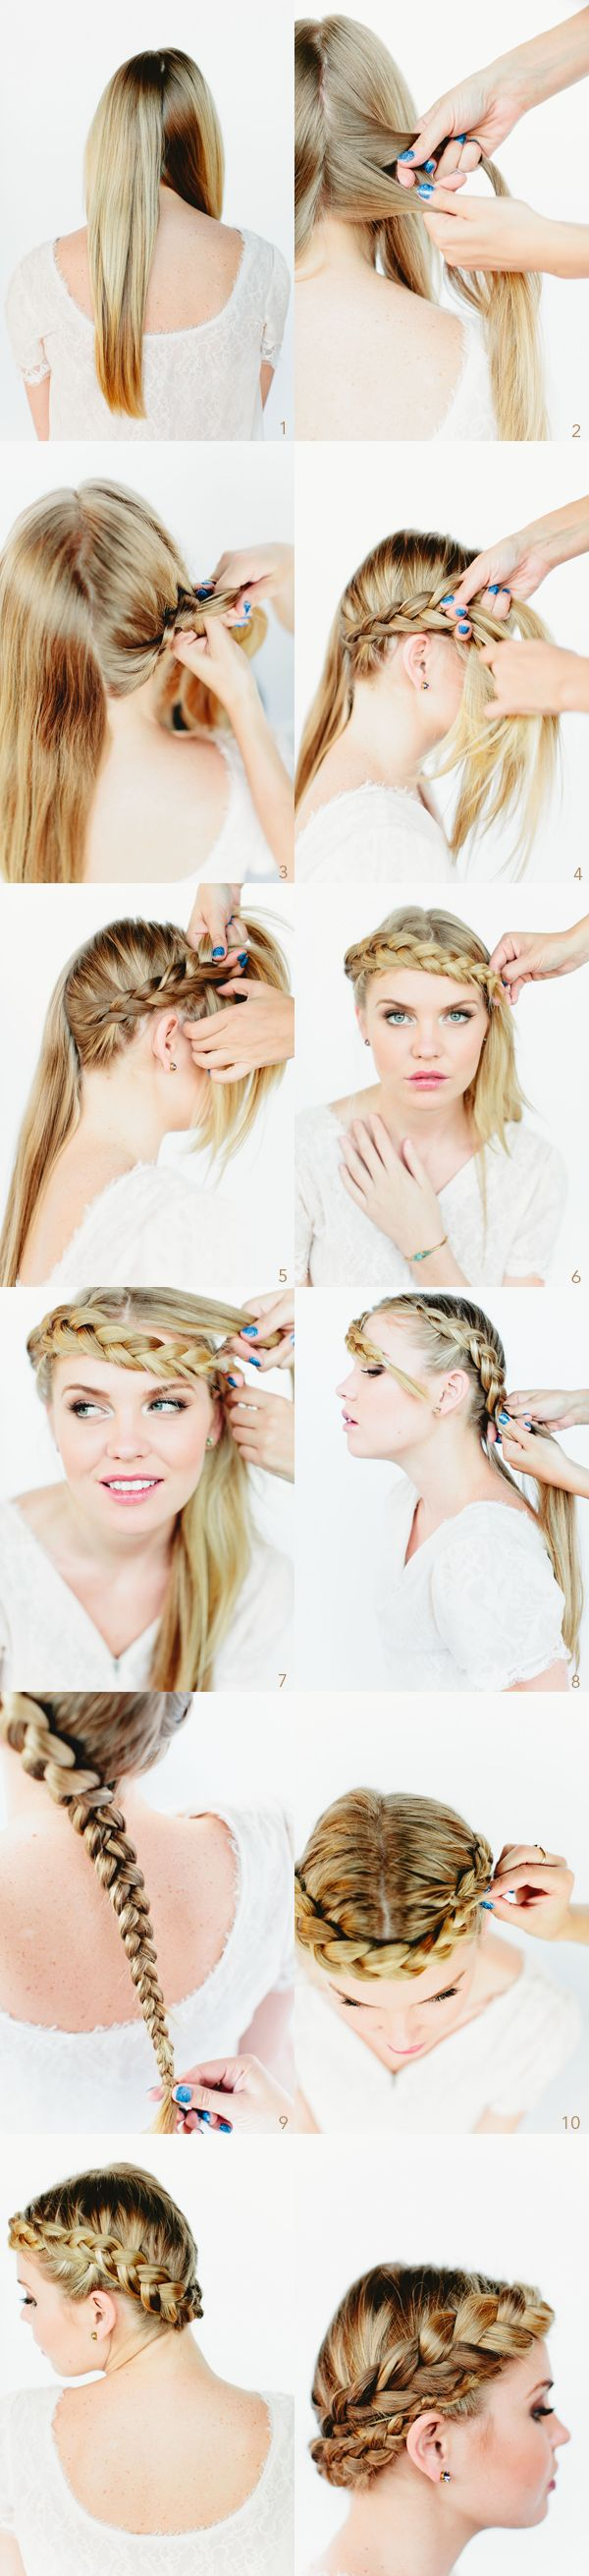 Crown Braid | The crown braid is so elegant and will dress up any outfit! Try it! #youresopretty youresopretty.com